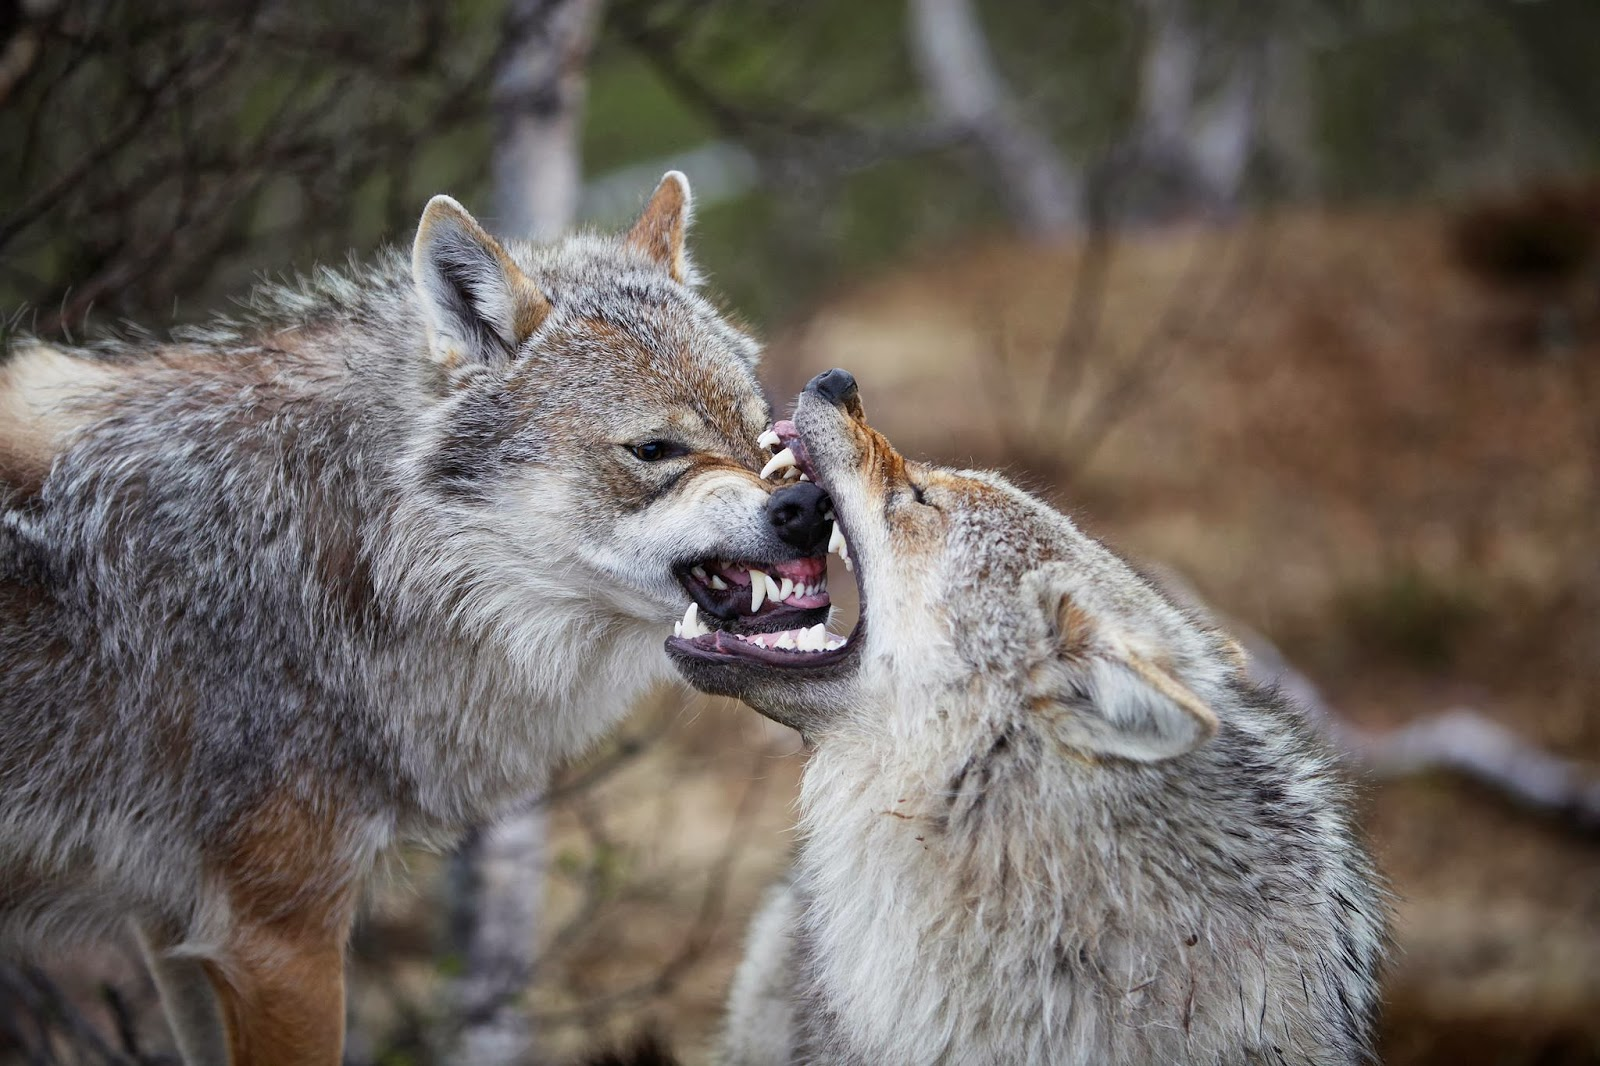 Wolves Mating With Humans The wolf gestation lasts a